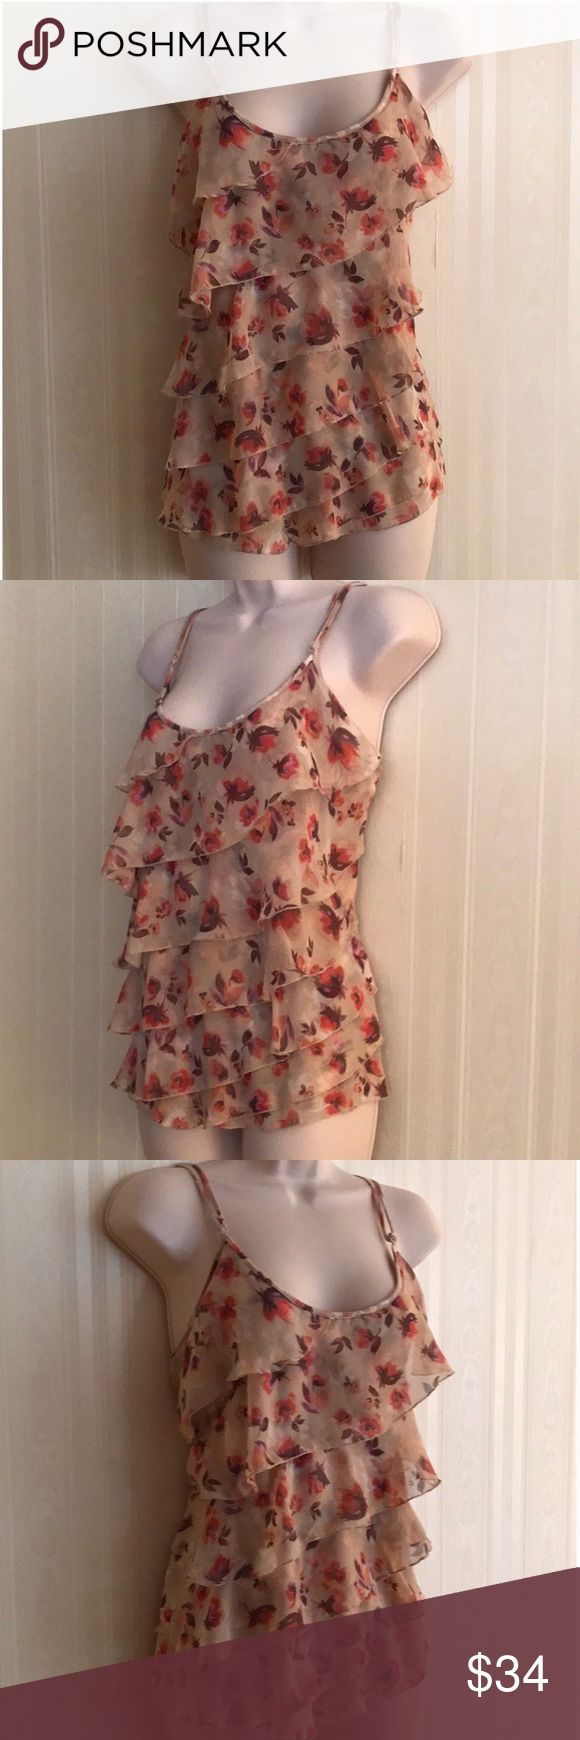 LAUREN CONRAD tiered cami top NEVER WORN Beautiful pink and brown cami top with tiered front.  Very slimming.  Adjustable straps.  Soft and silky.  Never worn, but has been washed.  In excellent condition. LC Lauren Conrad Tops Camisoles